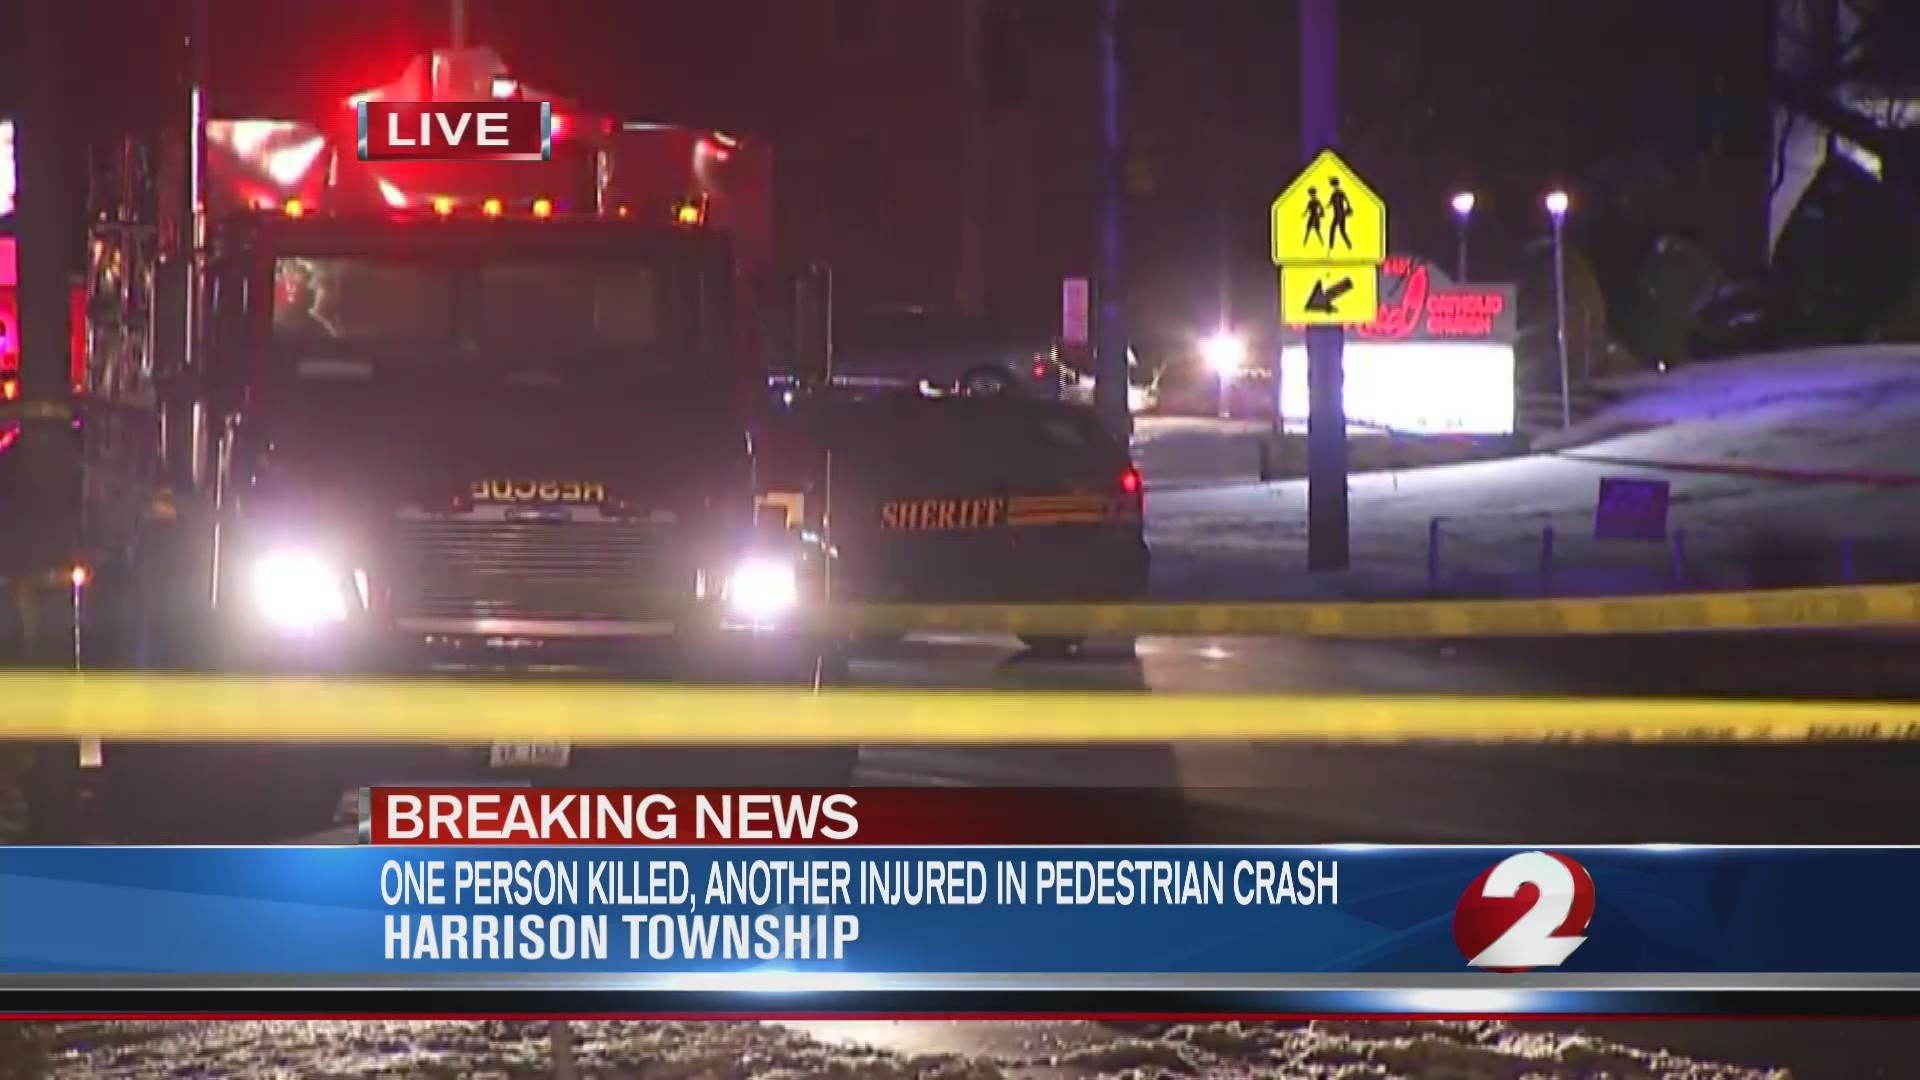 One person killed, another injured in pedestrian crash